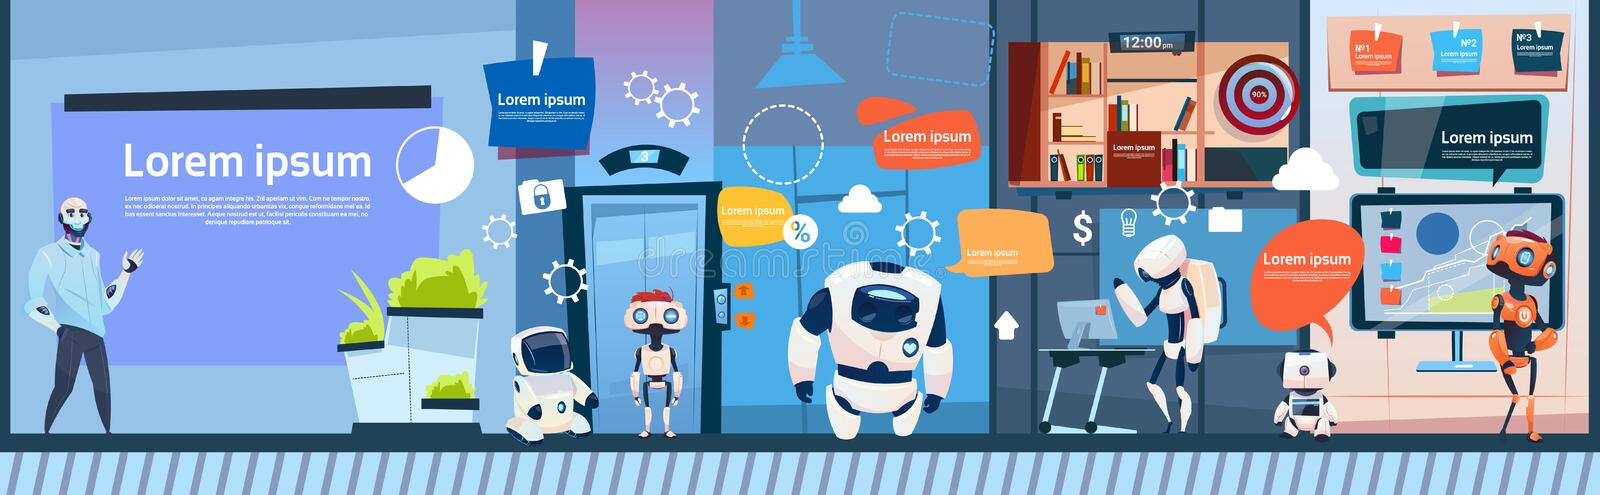 Modern Office Business Robots Group Working, Company Cyborg Team Banner With Copy Space. Flat Vector Illustration vector illustration